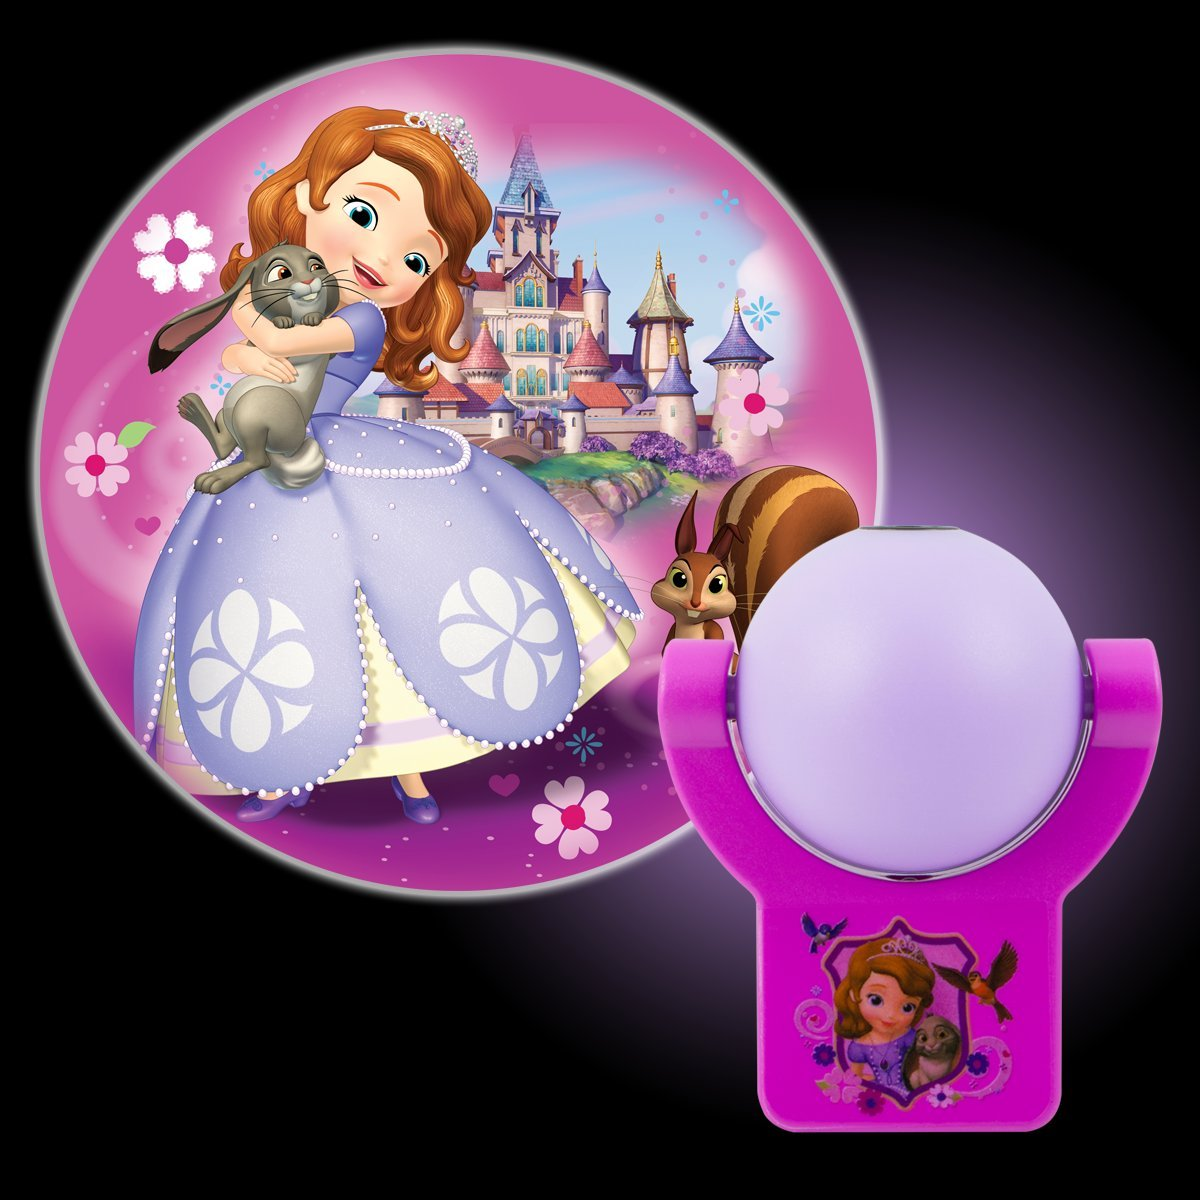 Disney projectables sophia the first led plug in night light disney projectables sophia the first led plug in night light 14529 image projects onto wall or ceiling amazon amipublicfo Images